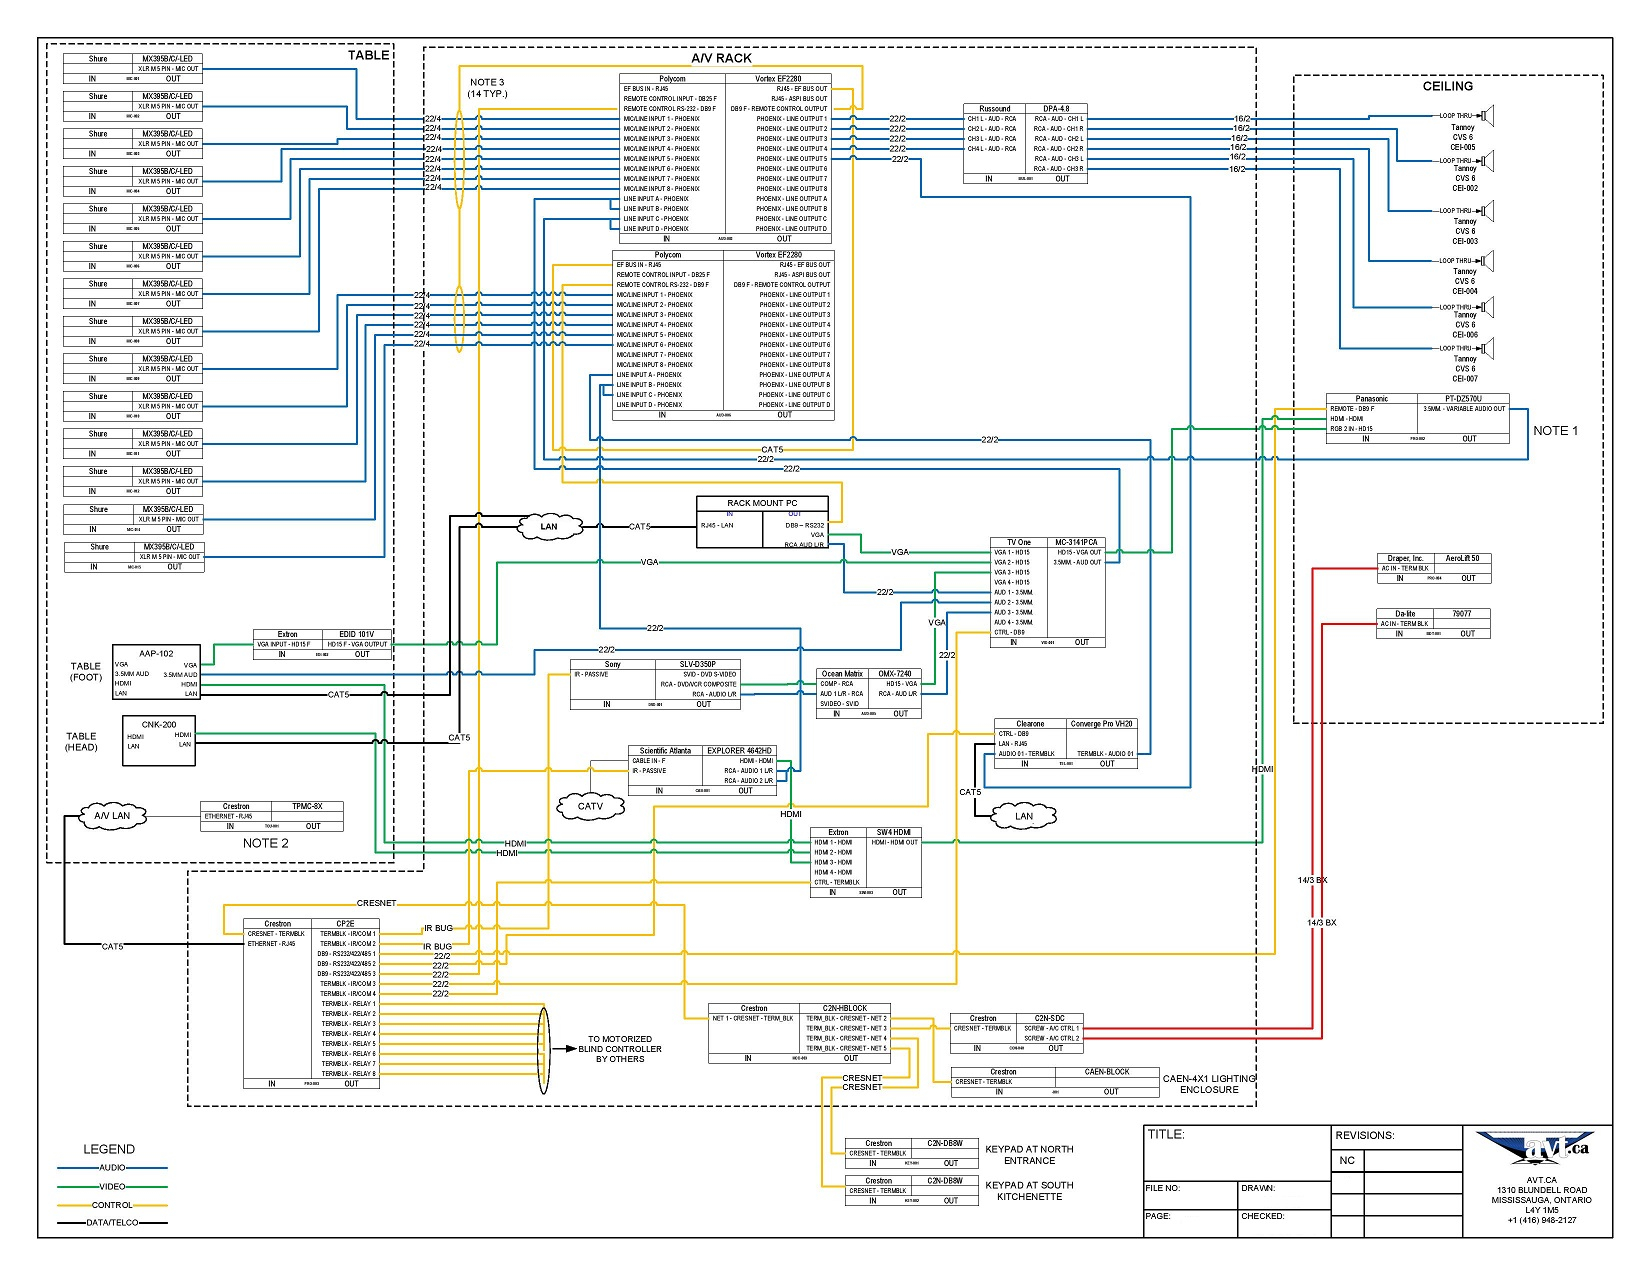 Home Automation Wiring Diagram Sample Images Of Diagrams Download New Best Clear Electrical